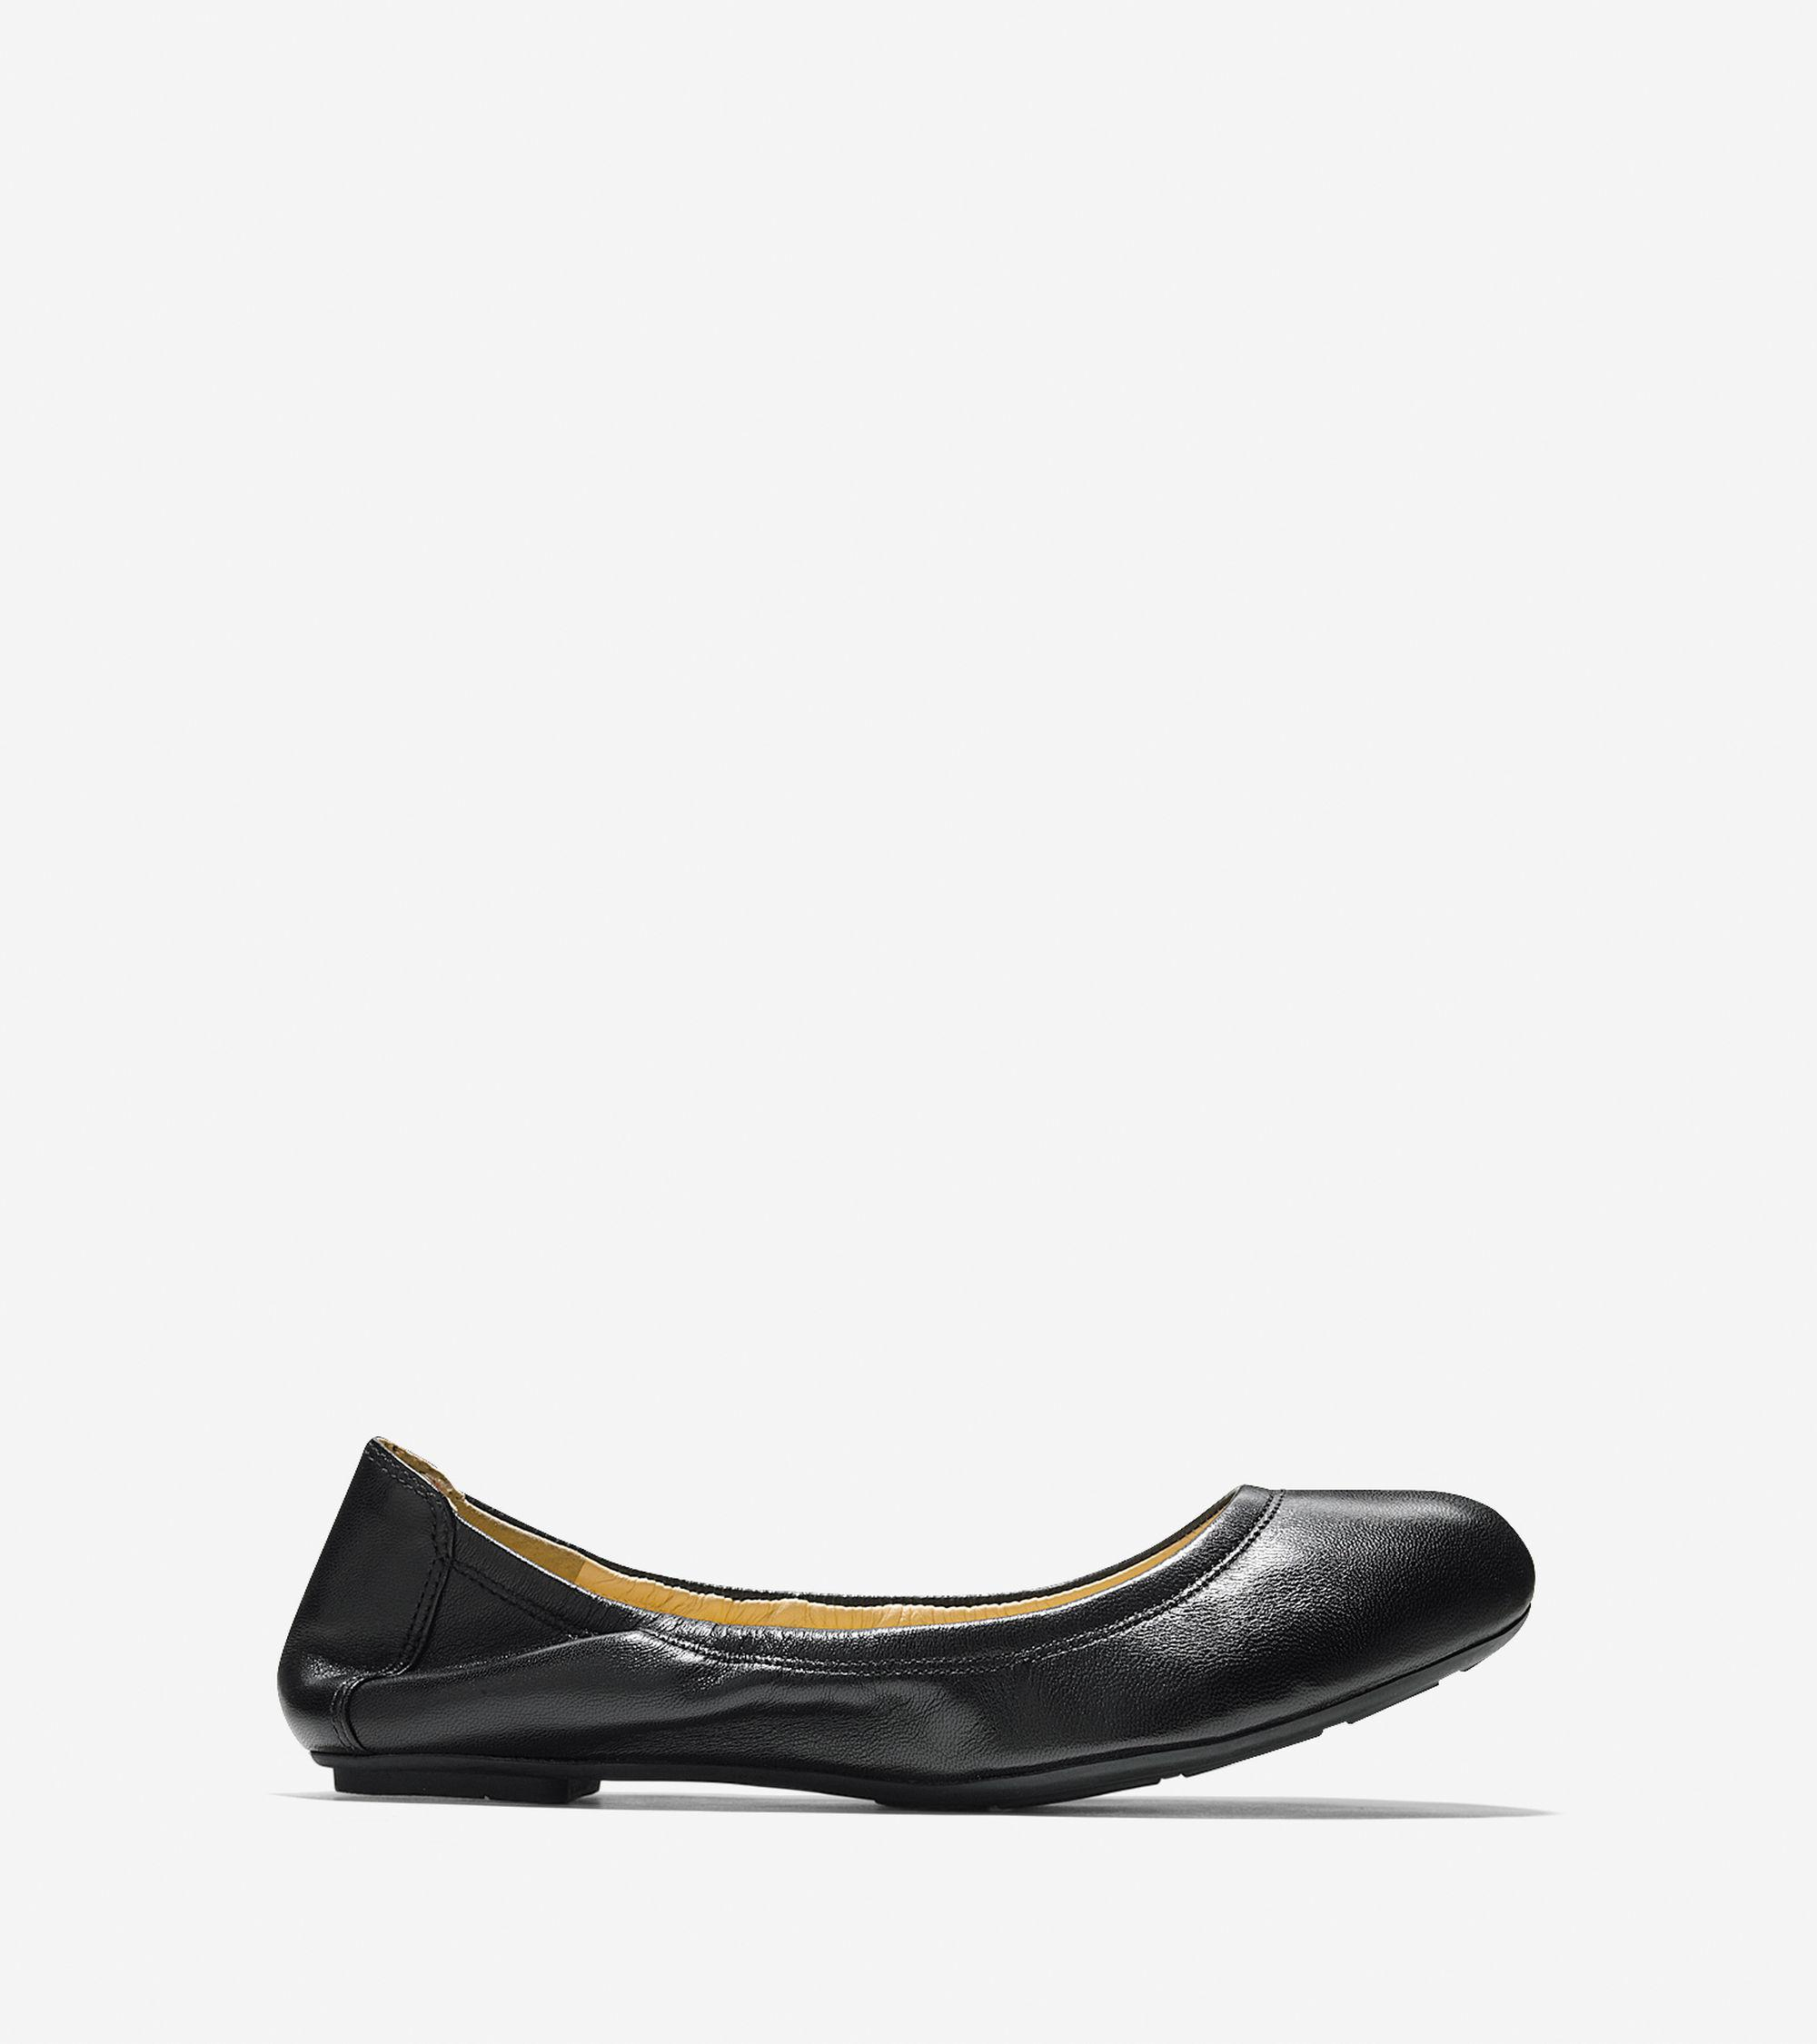 Cole Haan locations in the USA (2), shopping and business information and locator Cole Haan near me. Check the list below with Cole Haan store locations in America. To easily find Cole Haan just use sorting by states and look at the map to display all stores.